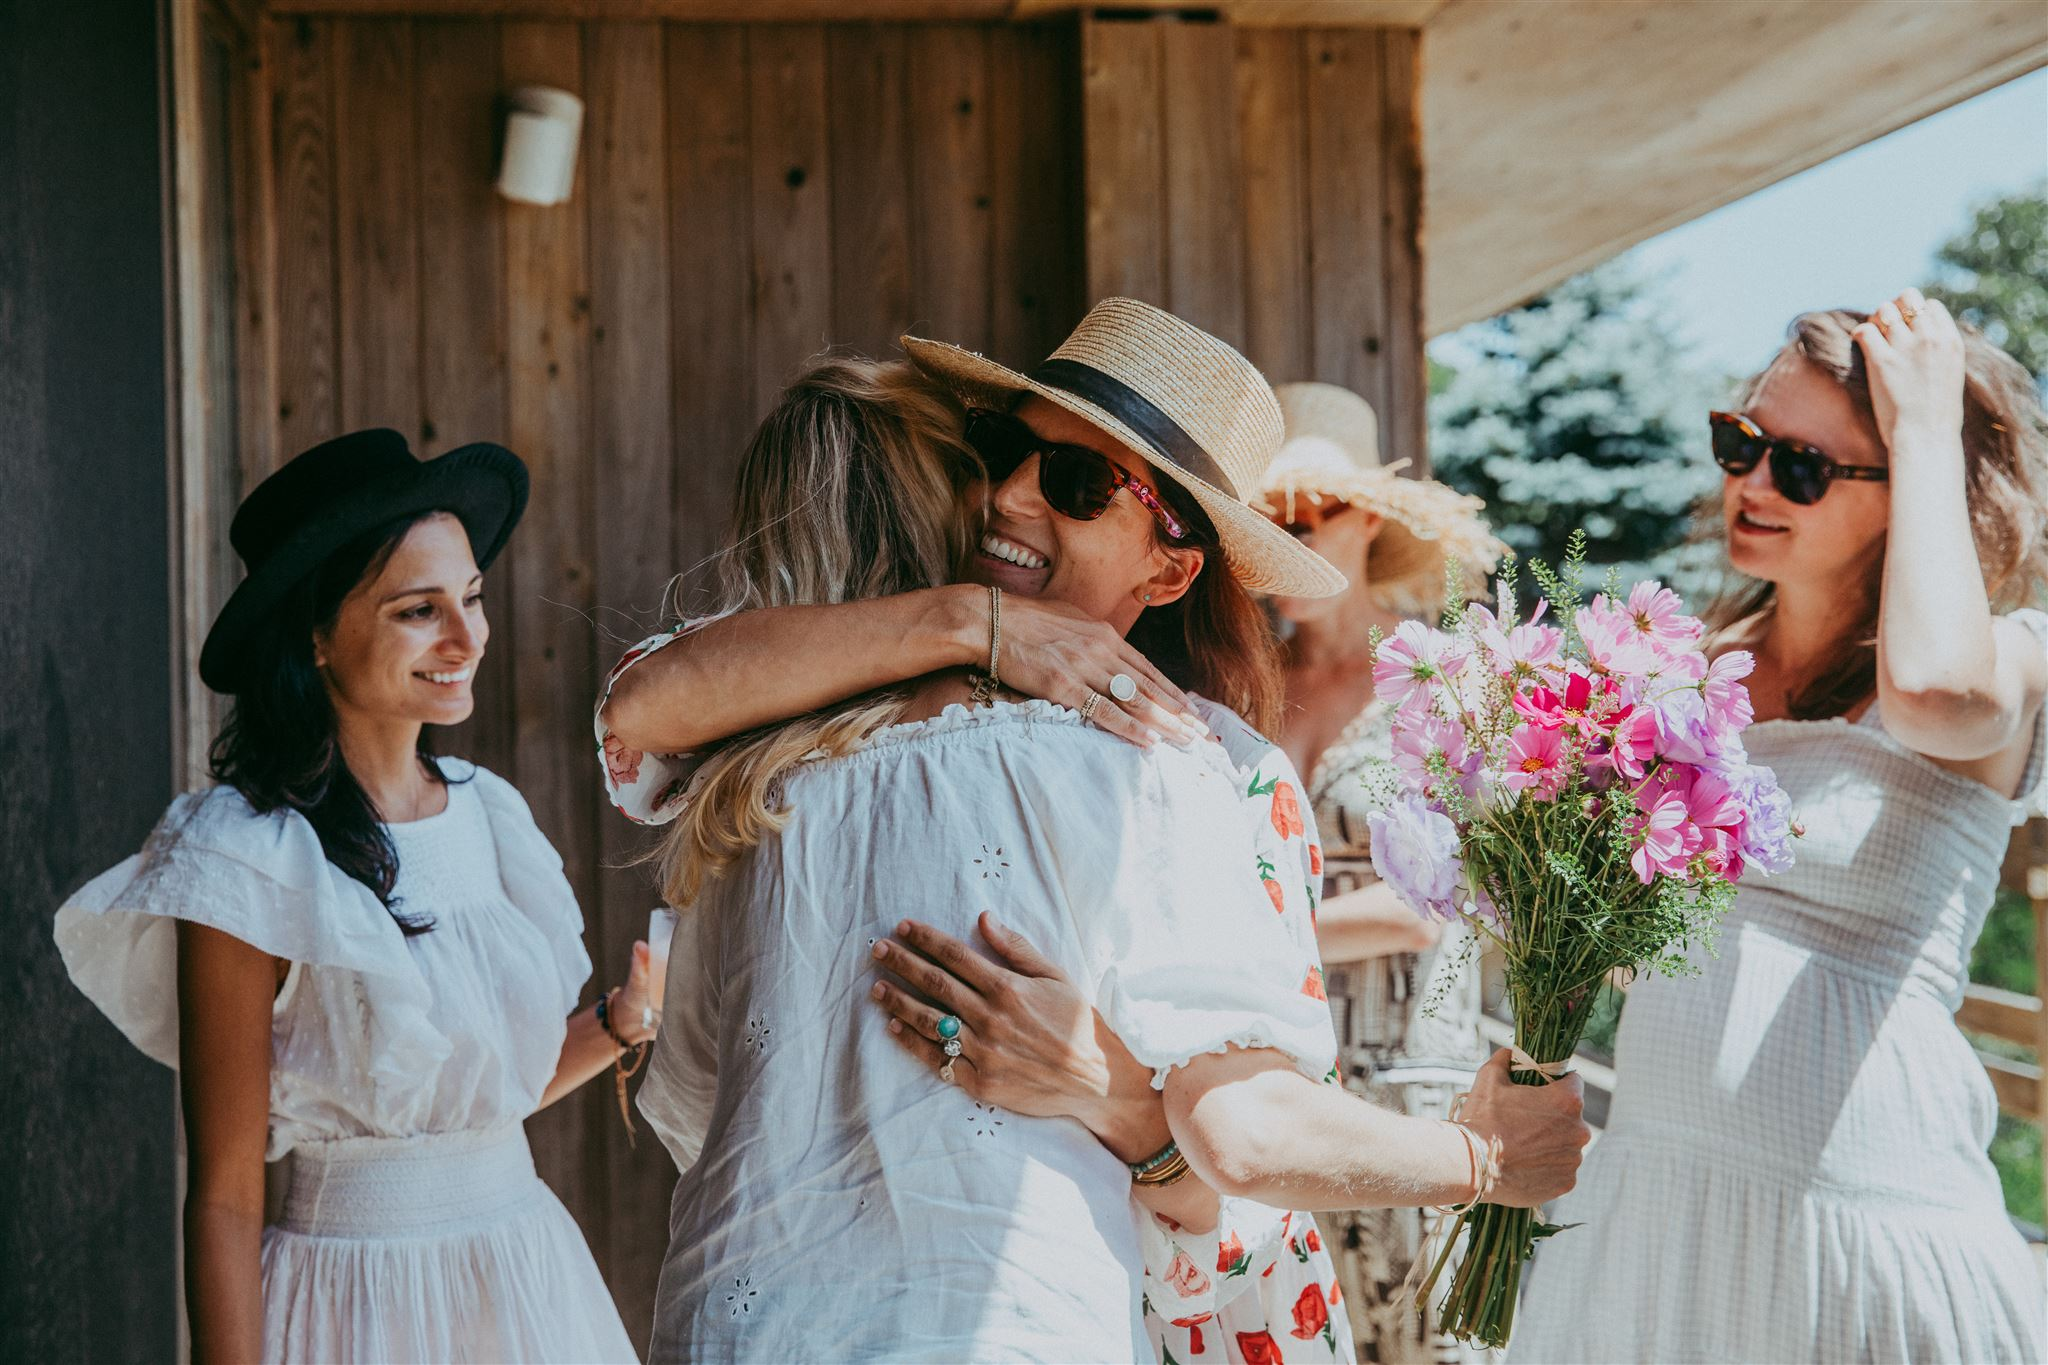 Guests greeting each other in the Hamptons